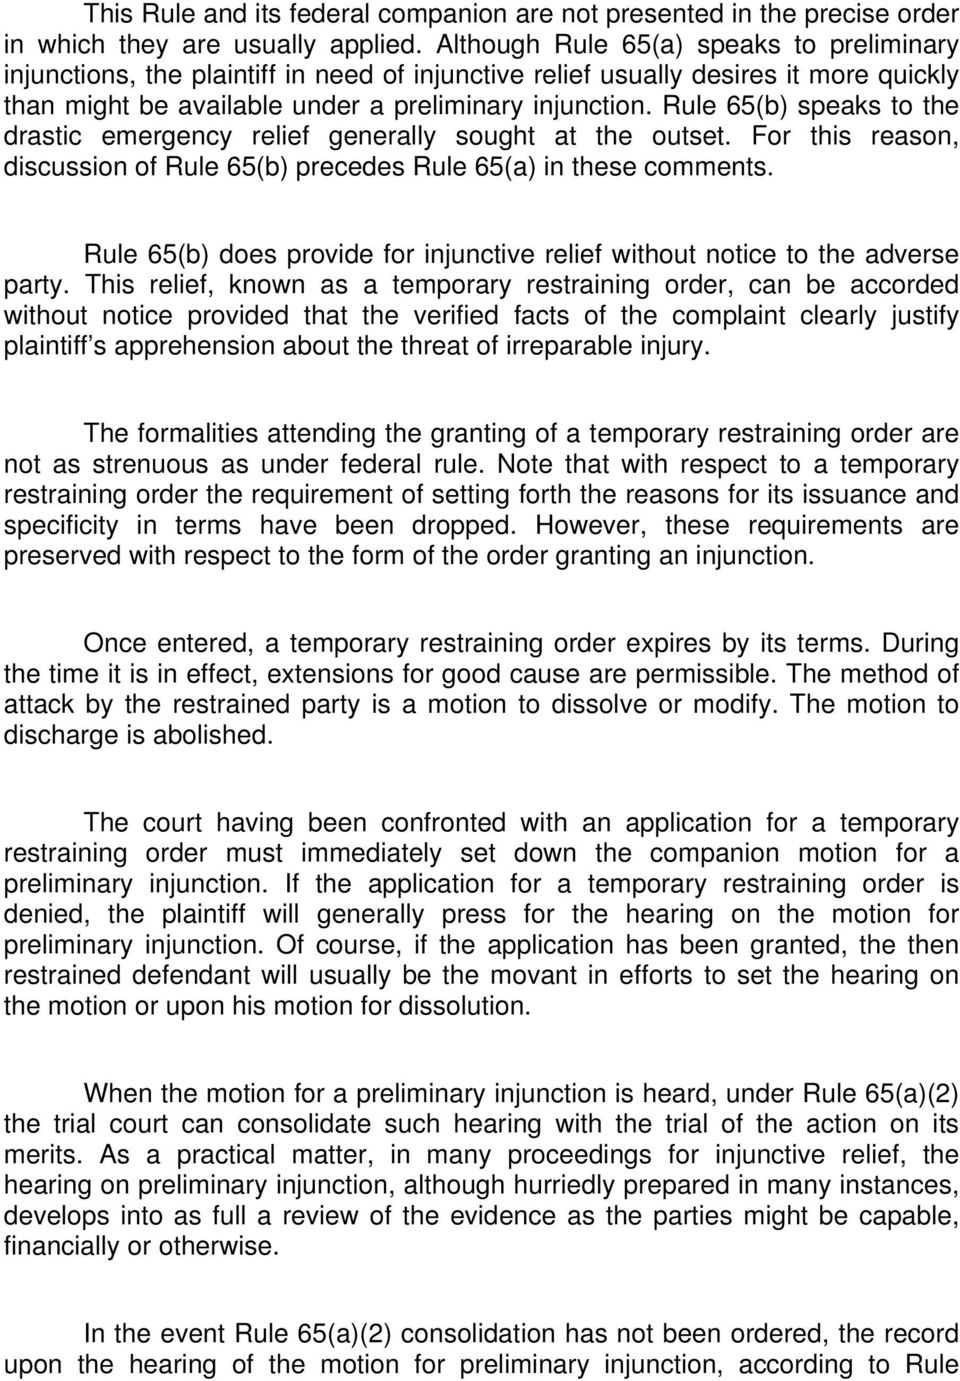 Rule 65(b) speaks to the drastic emergency relief generally sought at the outset. For this reason, discussion of Rule 65(b) precedes Rule 65(a) in these comments.